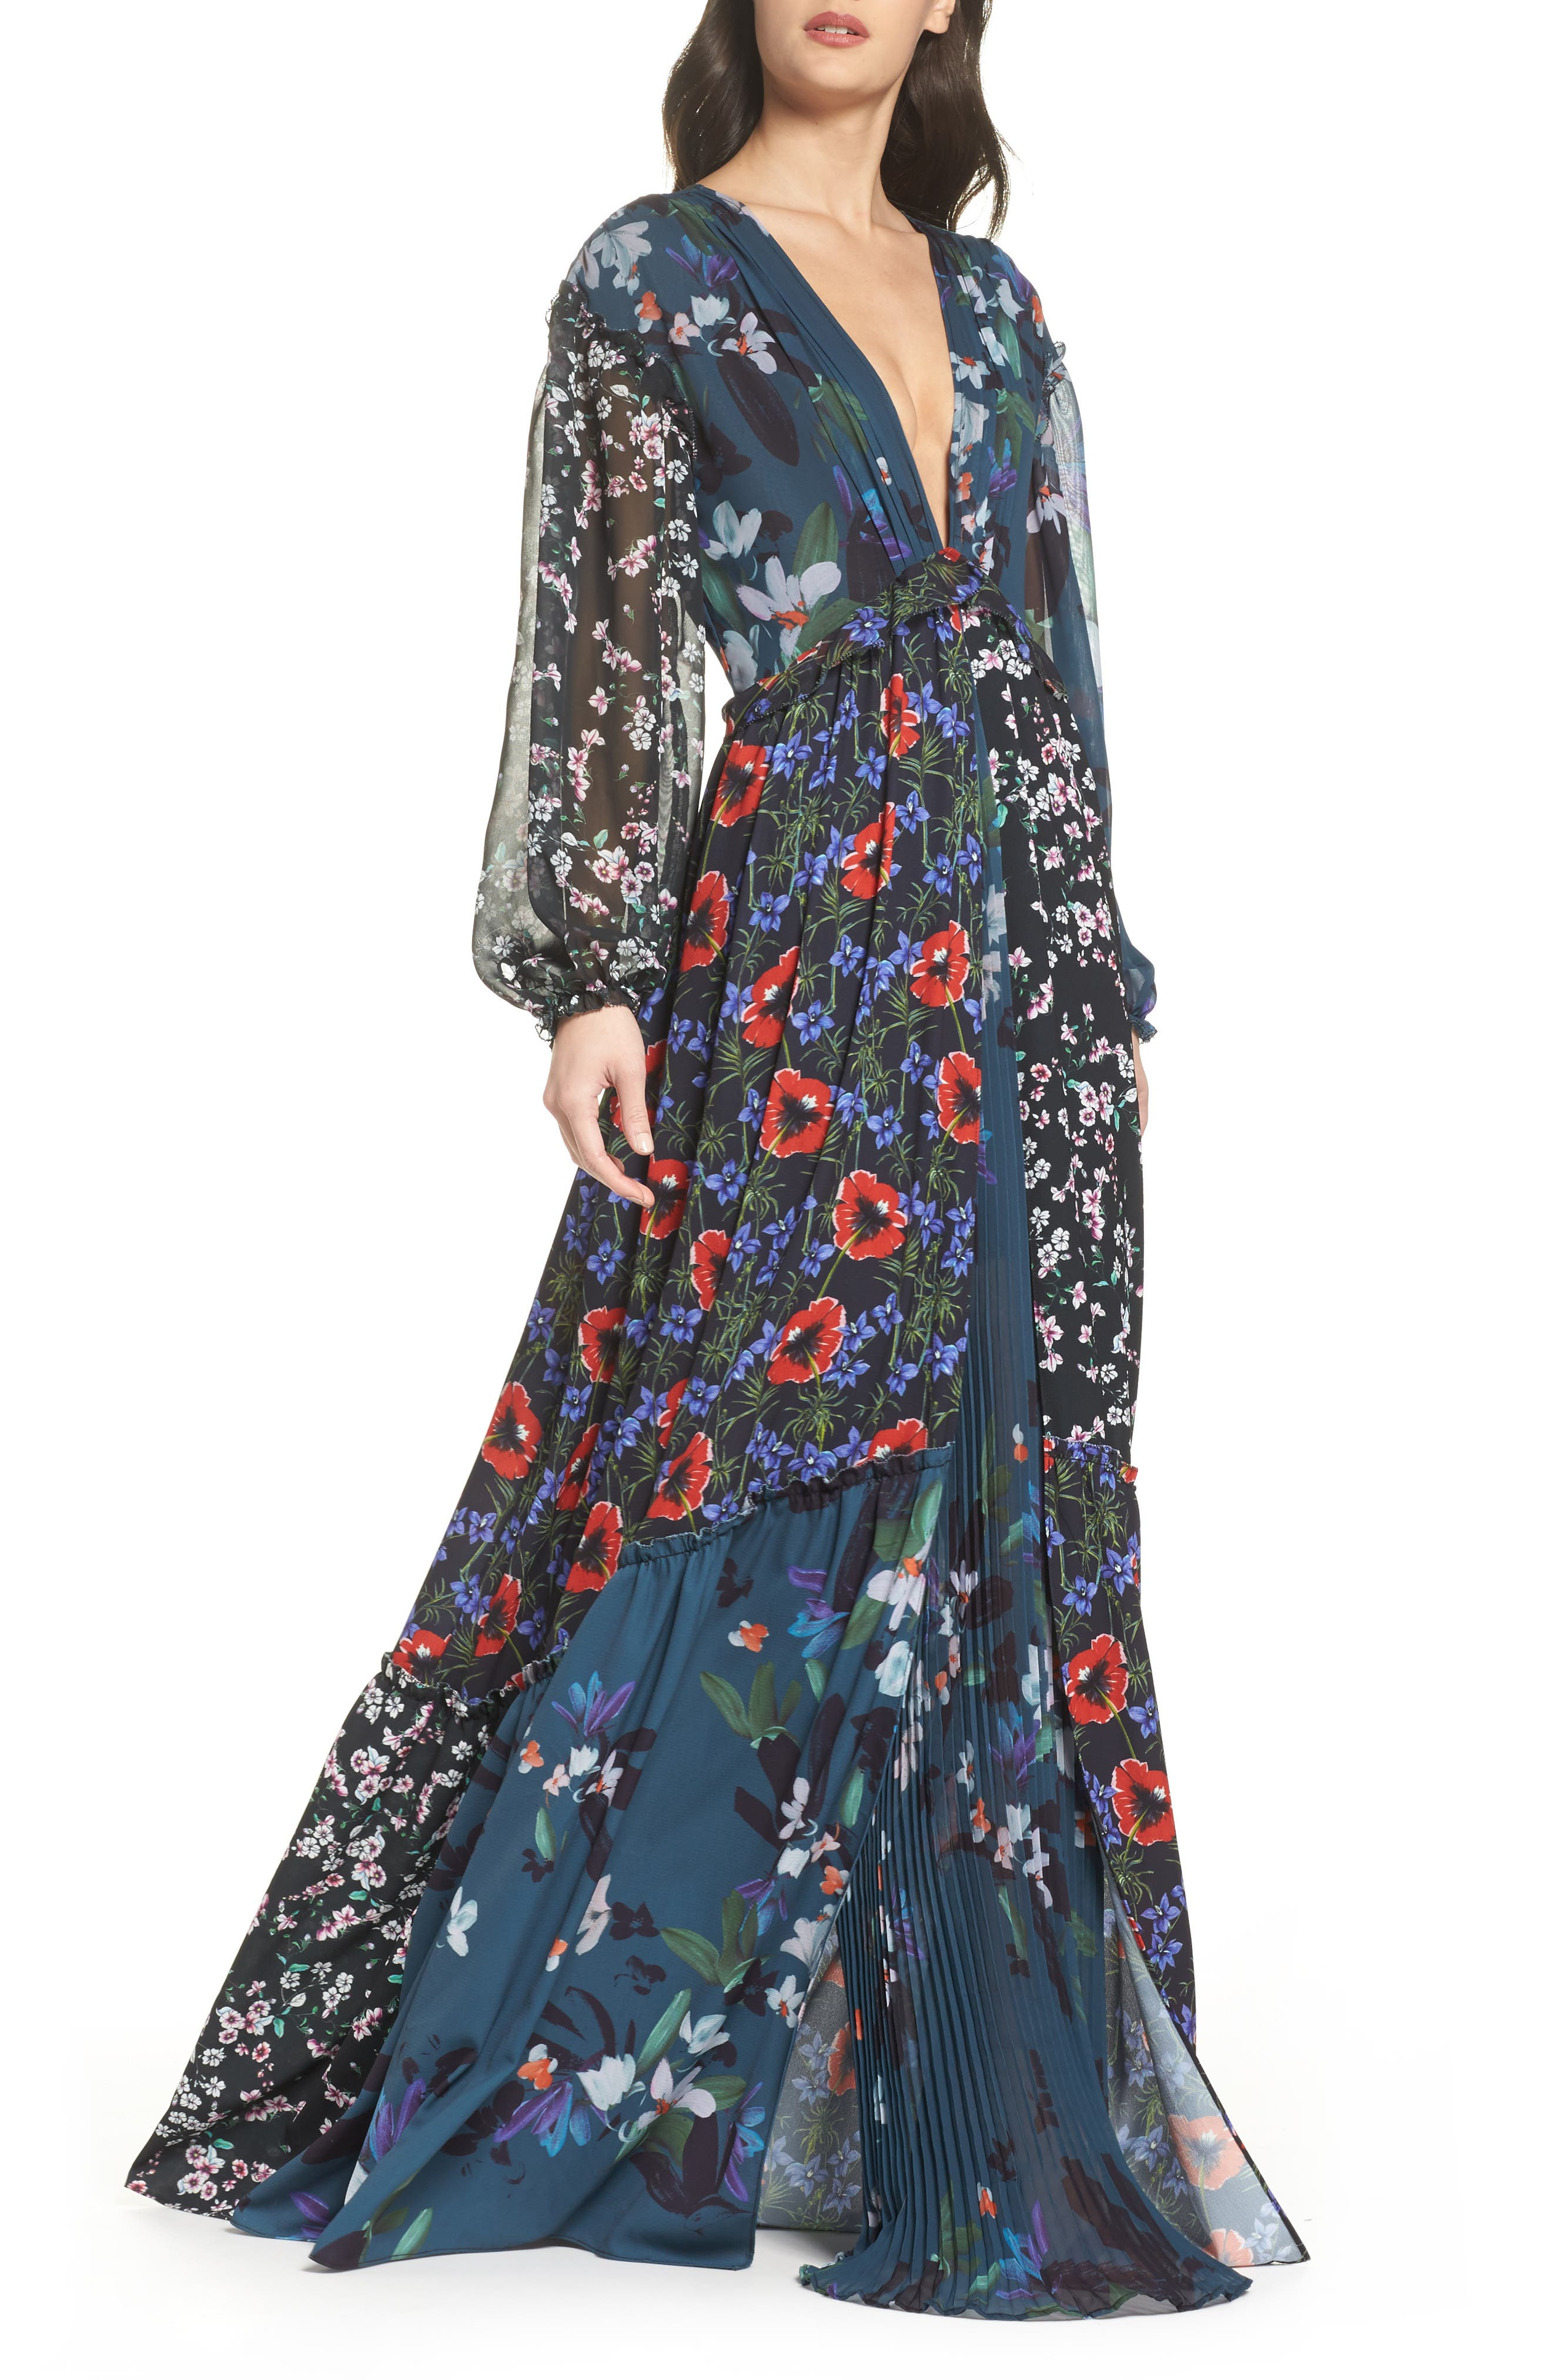 Celia Mix Floral Maxi Dress,                         Main,                         color, Deep Teal Multi